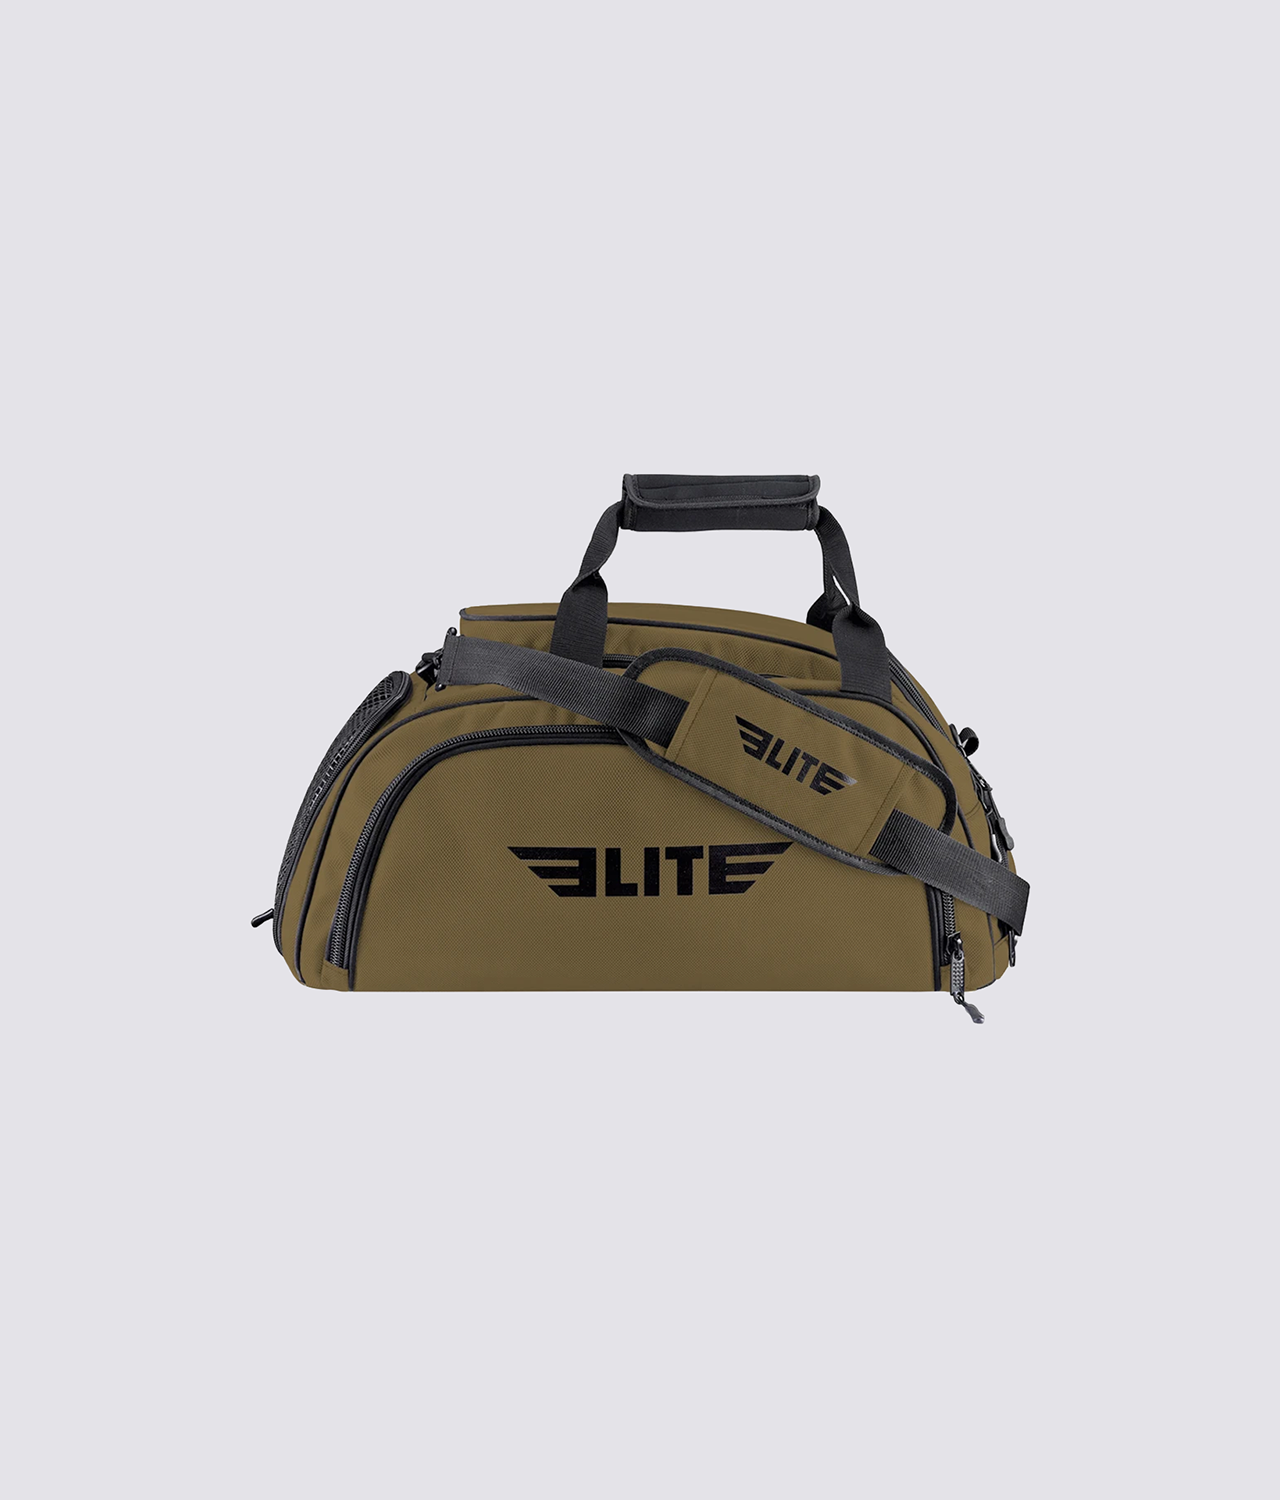 Elite Sports Warrior Series Khaki Large Duffel Muay Thai Gear Gym Bag & Backpack